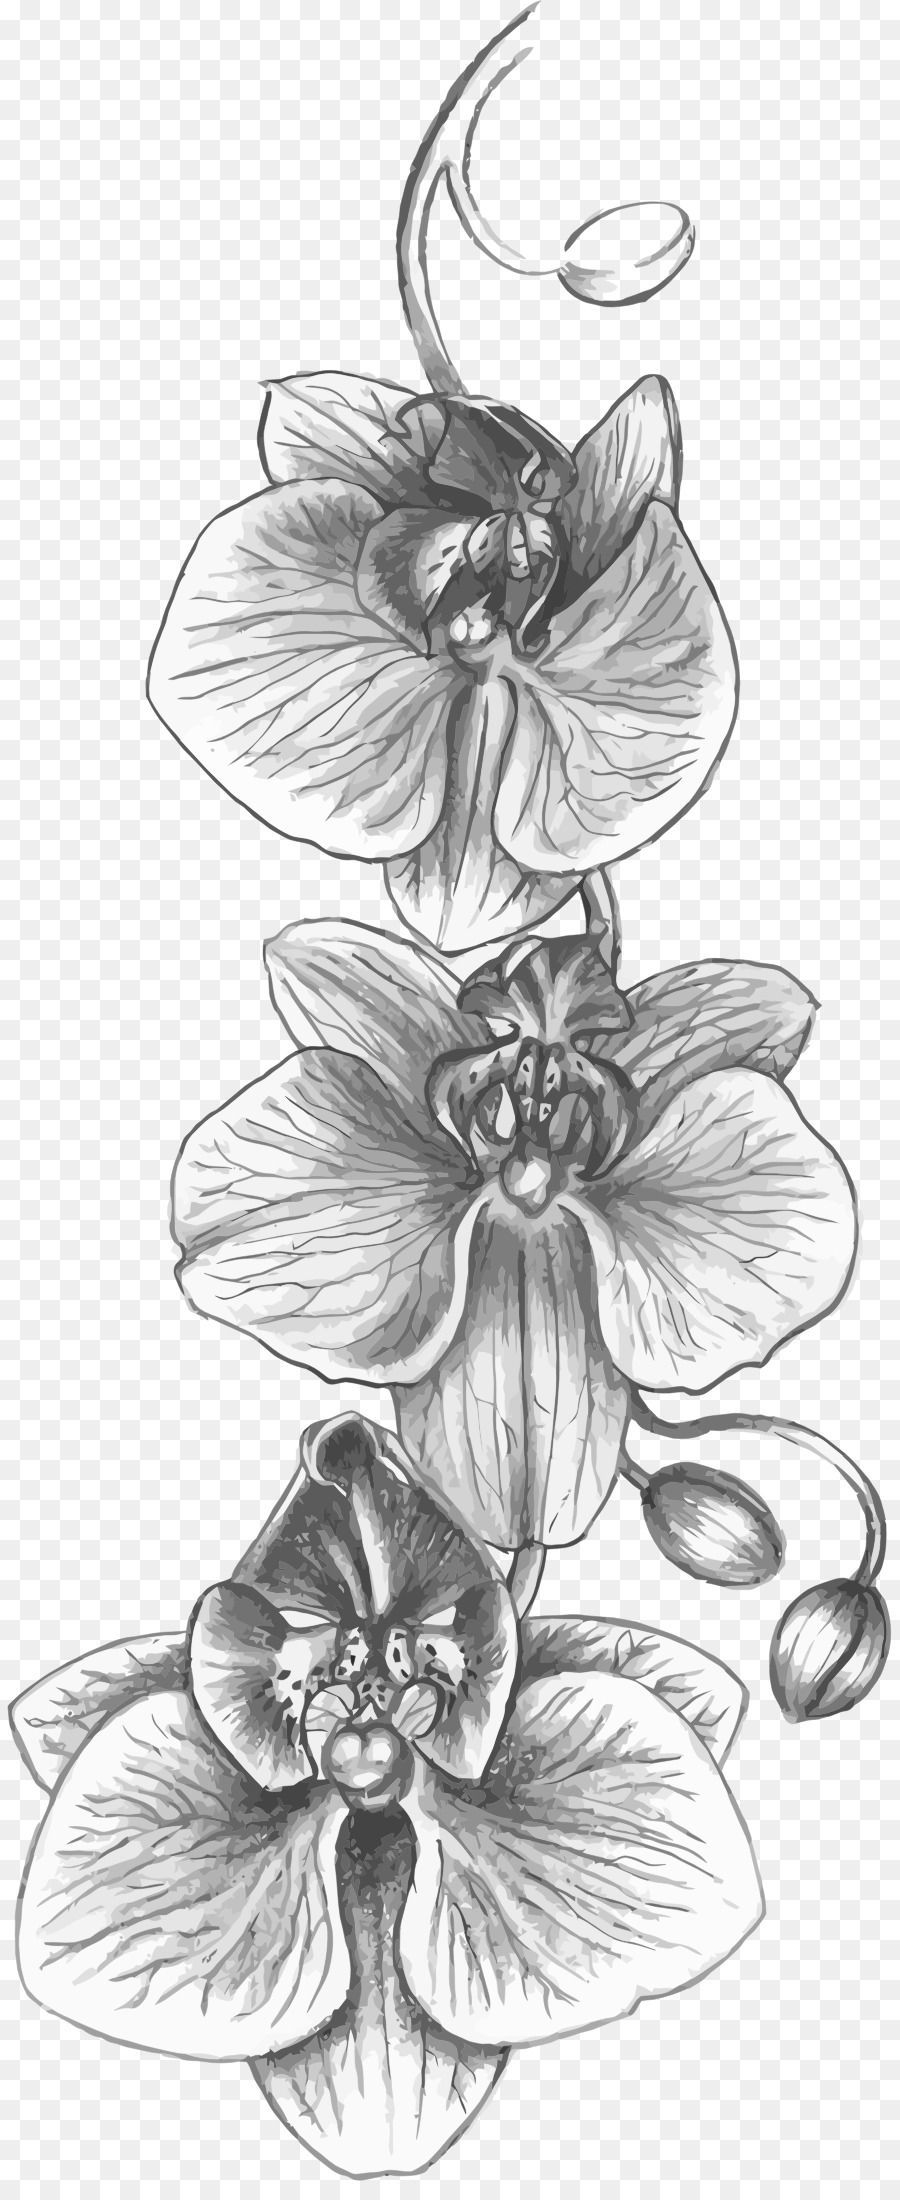 Google Image Result For Https Banner2 Cleanpng Com 20180329 Kzq Kisspng Cattleya Orchids Tattoo Drawing Flower In 2020 Tattoo Drawings Flower Sketches Orchid Tattoo